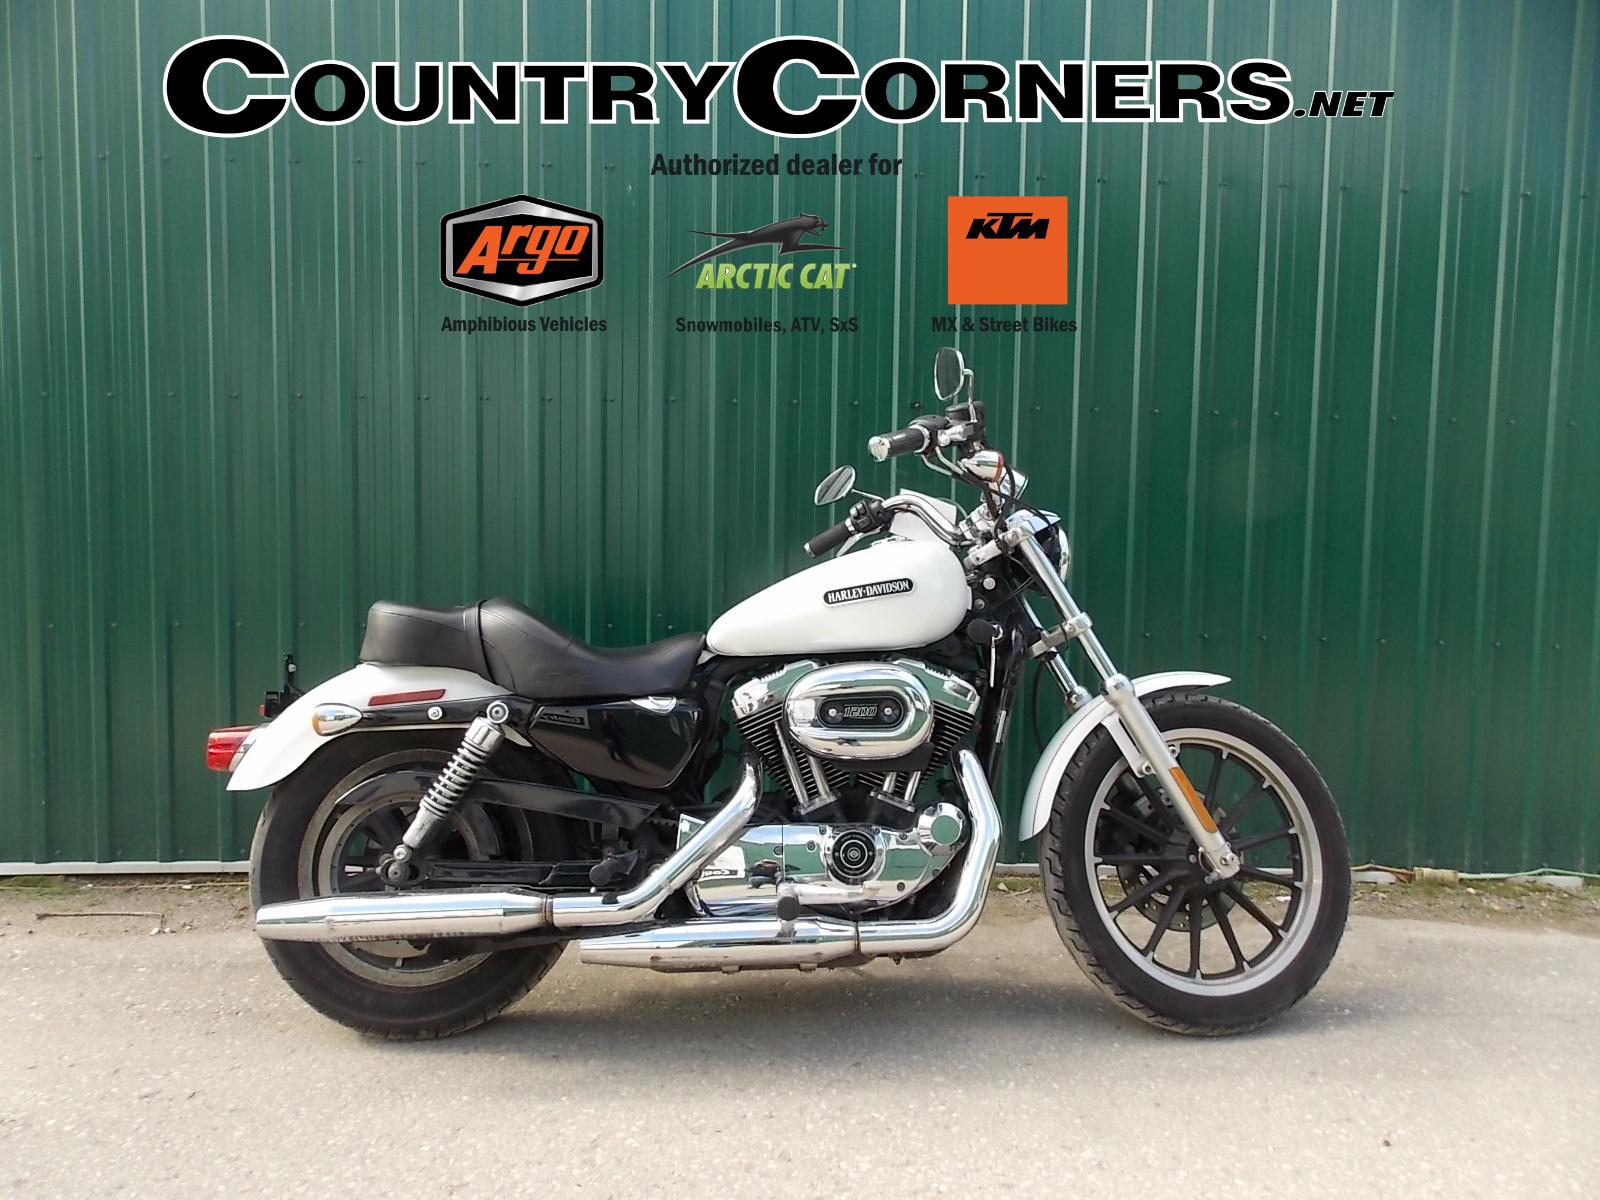 small resolution of 2007 harley davidson xl1200 sportster country corners